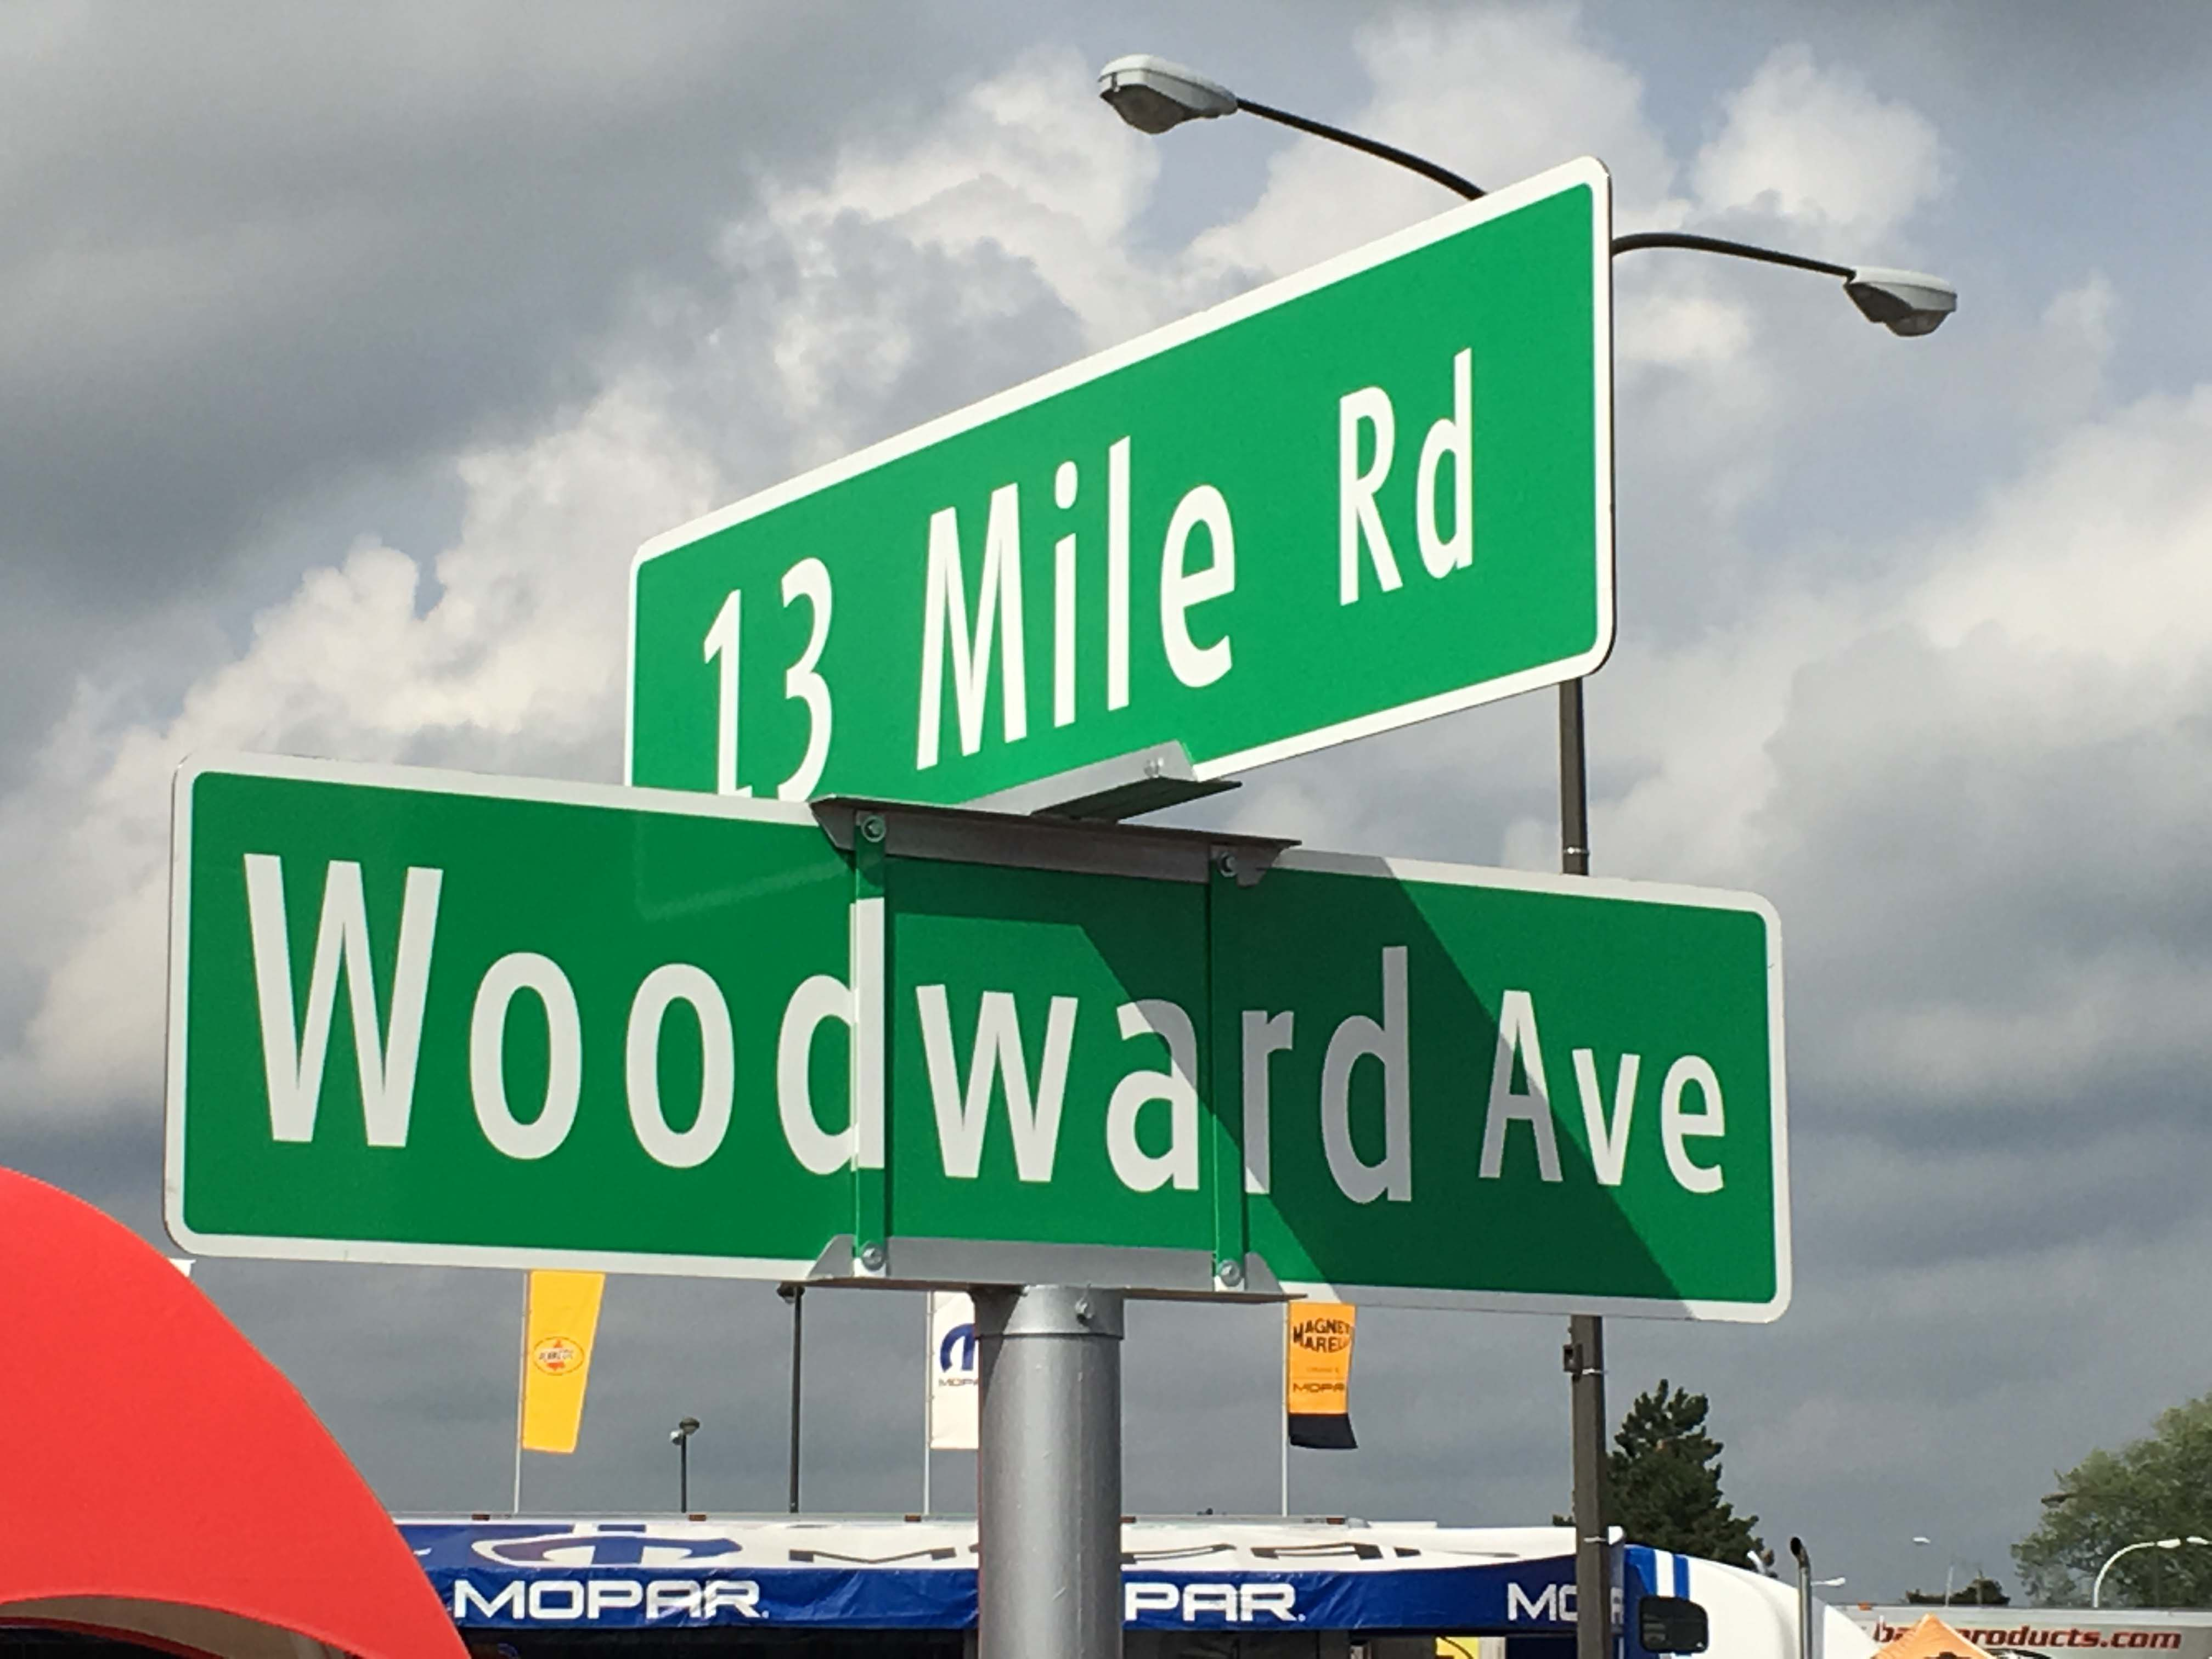 The corner of 13 Mile and Woodward Avenue is considered by many to be ground zero for the activities during the Woodward Dream Cruise. Thousands of vehicles and hundreds of thousands of participants and spectators jam the streets and sidewalks for 6 miles north and south of this point.